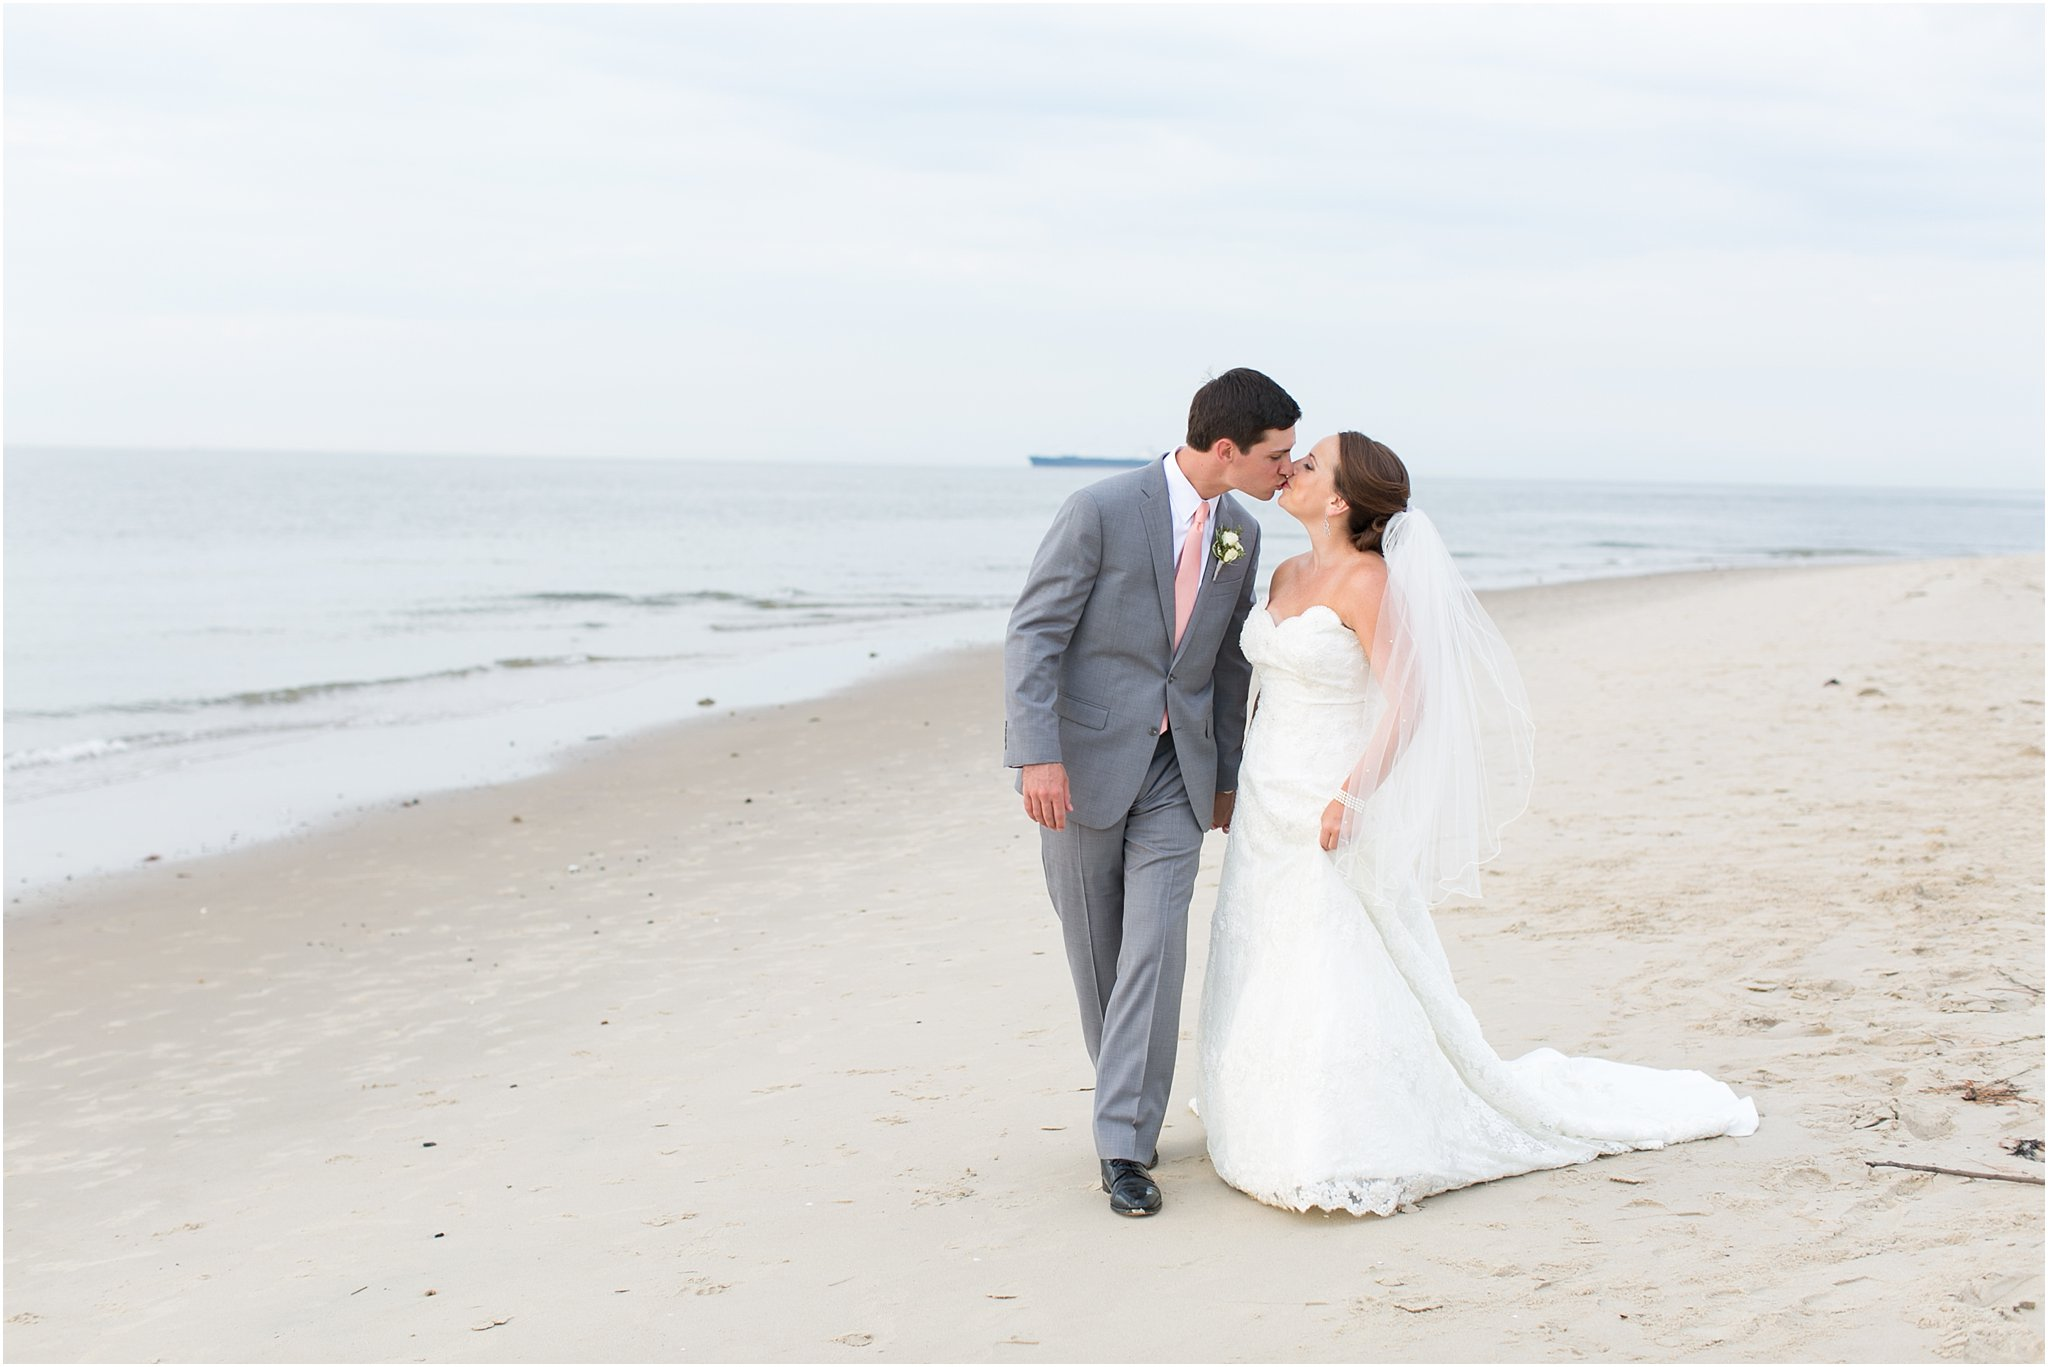 jessica_ryan_photography_wedding_photography_virginiabeach_virginia_candid_authentic_wedding_portraits_marina_shores_yacht_club_chesapeake_bay_1879